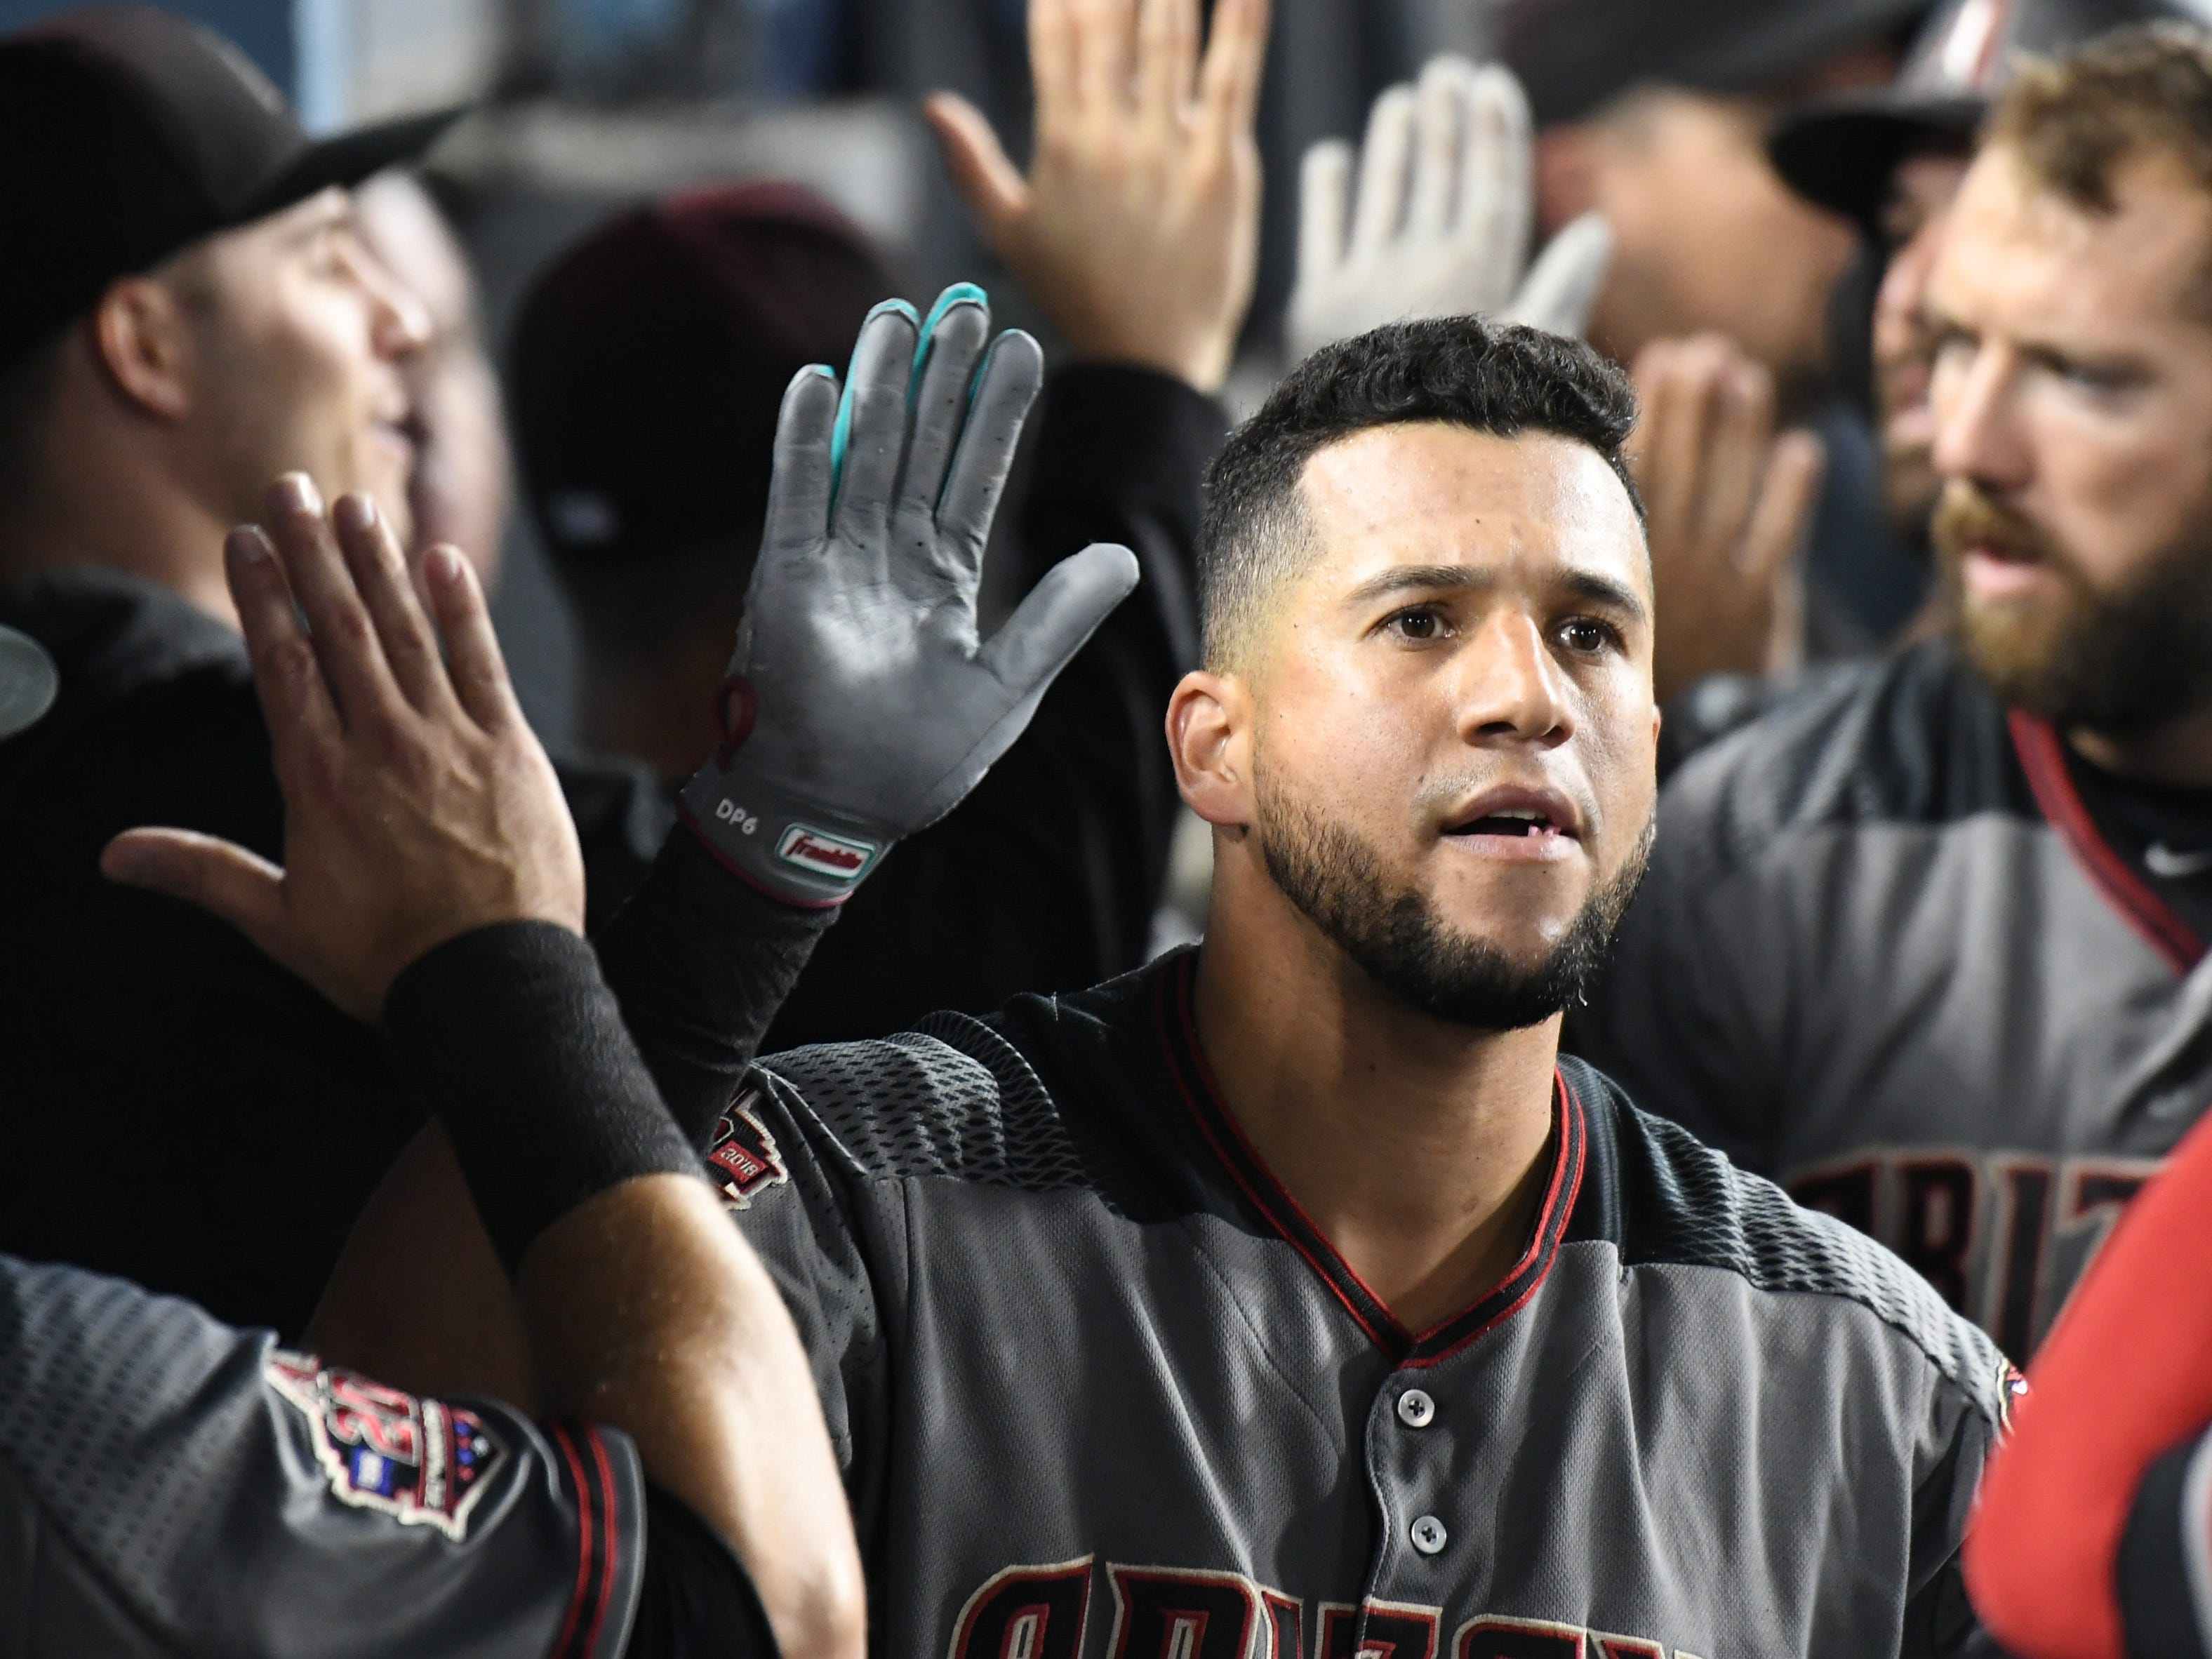 Aug 30, 2018; Los Angeles, CA, USA; Arizona Diamondbacks right fielder David Peralta (6) celebrates in the dugout after hitting a three run home run against the Los Angeles Dodgers in the fifth inning at Dodger Stadium. Mandatory Credit: Richard Mackson-USA TODAY Sports